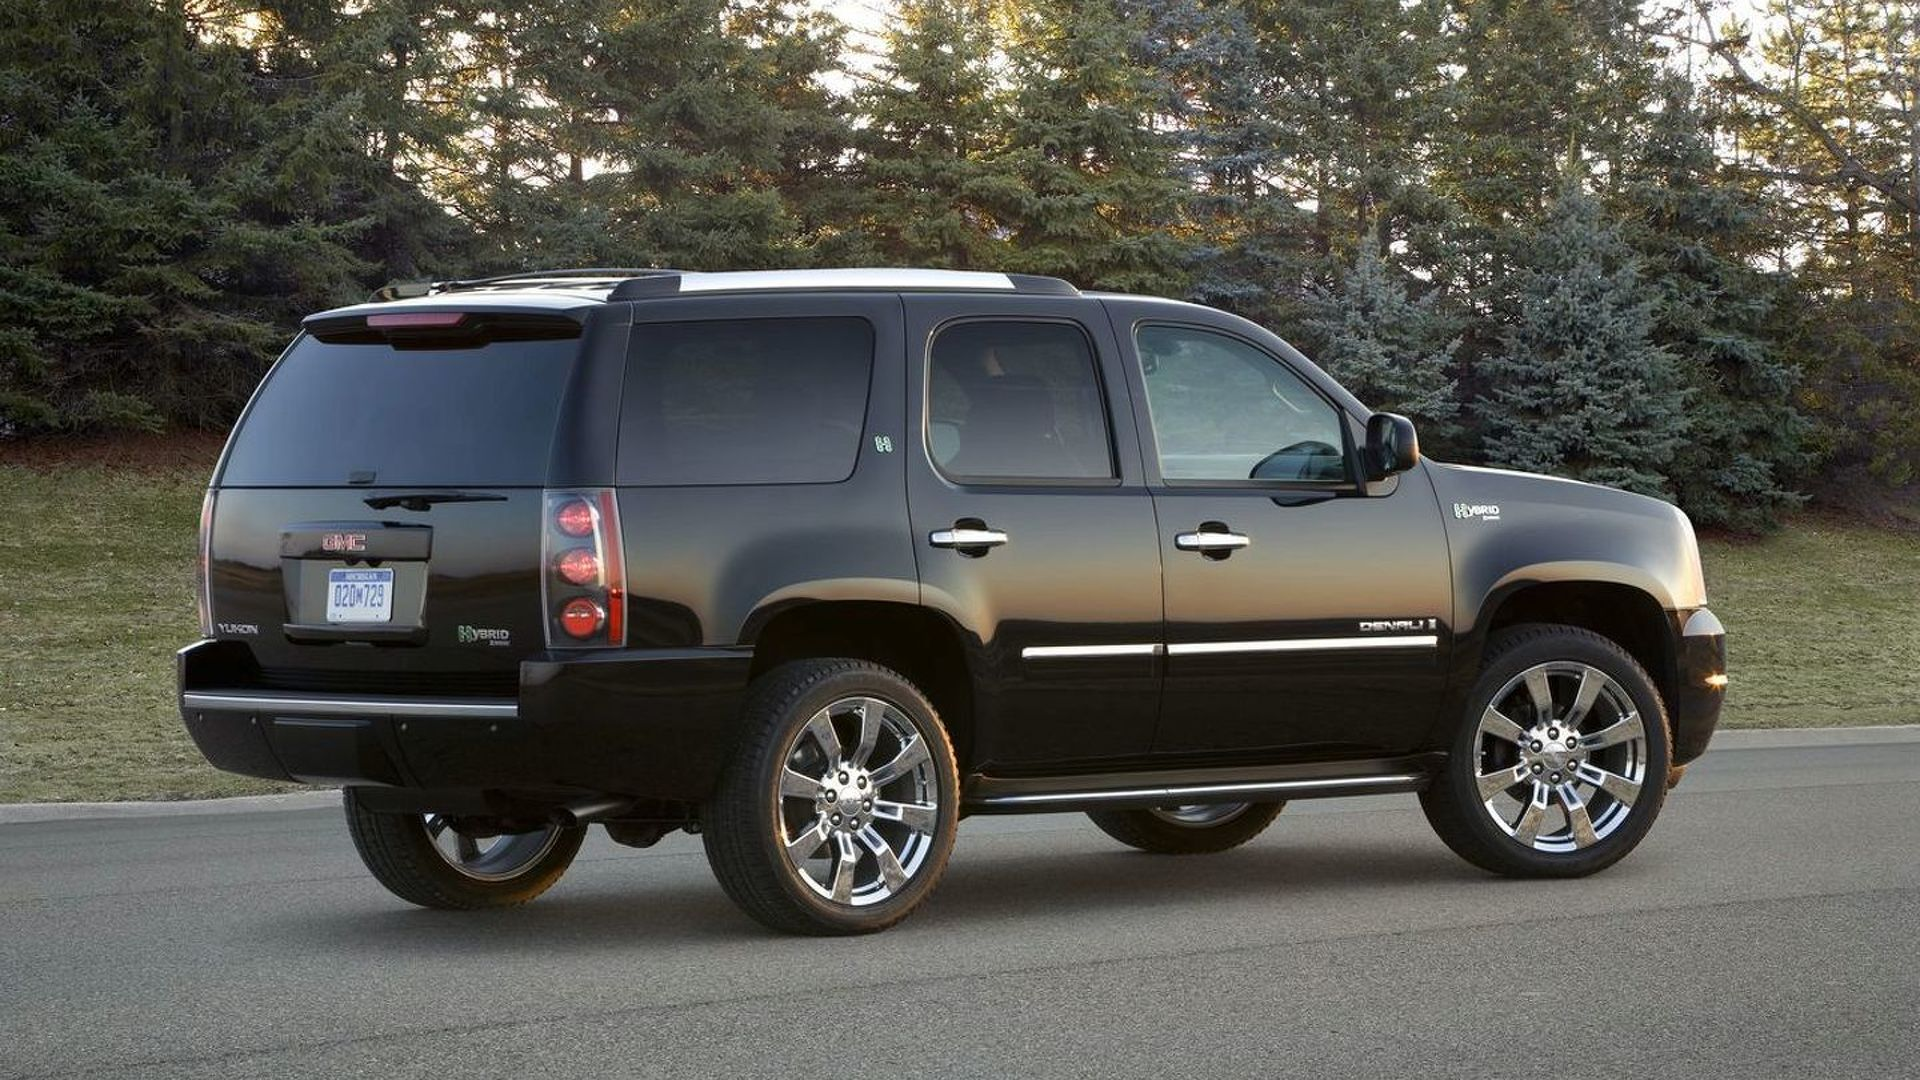 top ratings crash earn suburban gmc test h yukon chevrolet tahoe chevy denali news